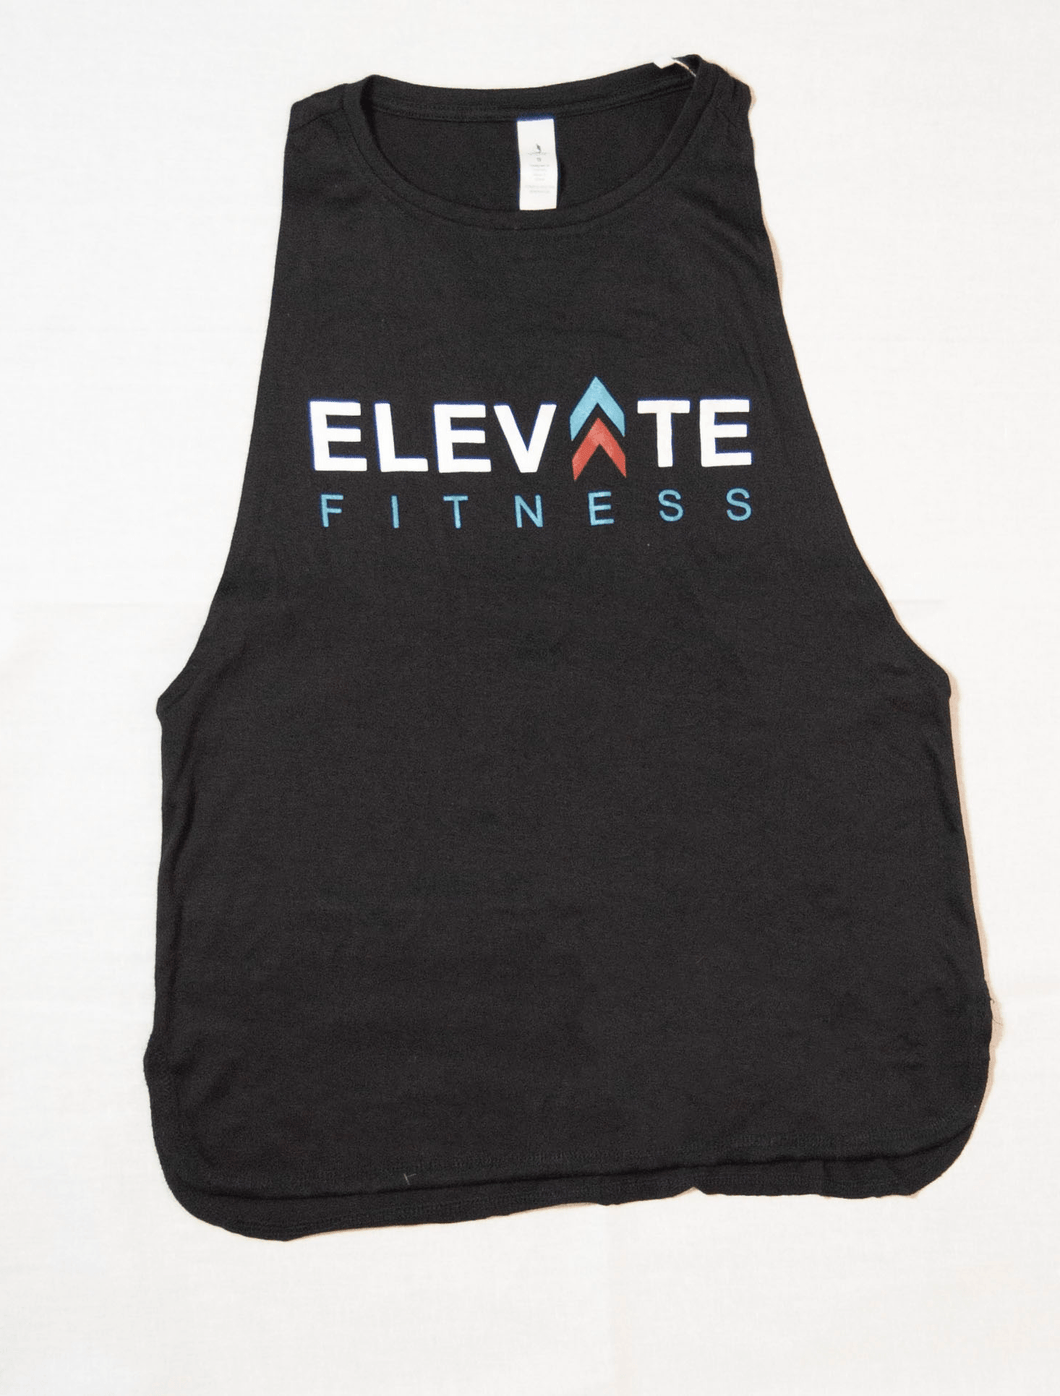 Black Women's Tank - elite personal trainers, Virtual Fitness Training, Virtual fitness classes, Nutrition Guidance | Elevate Fitness